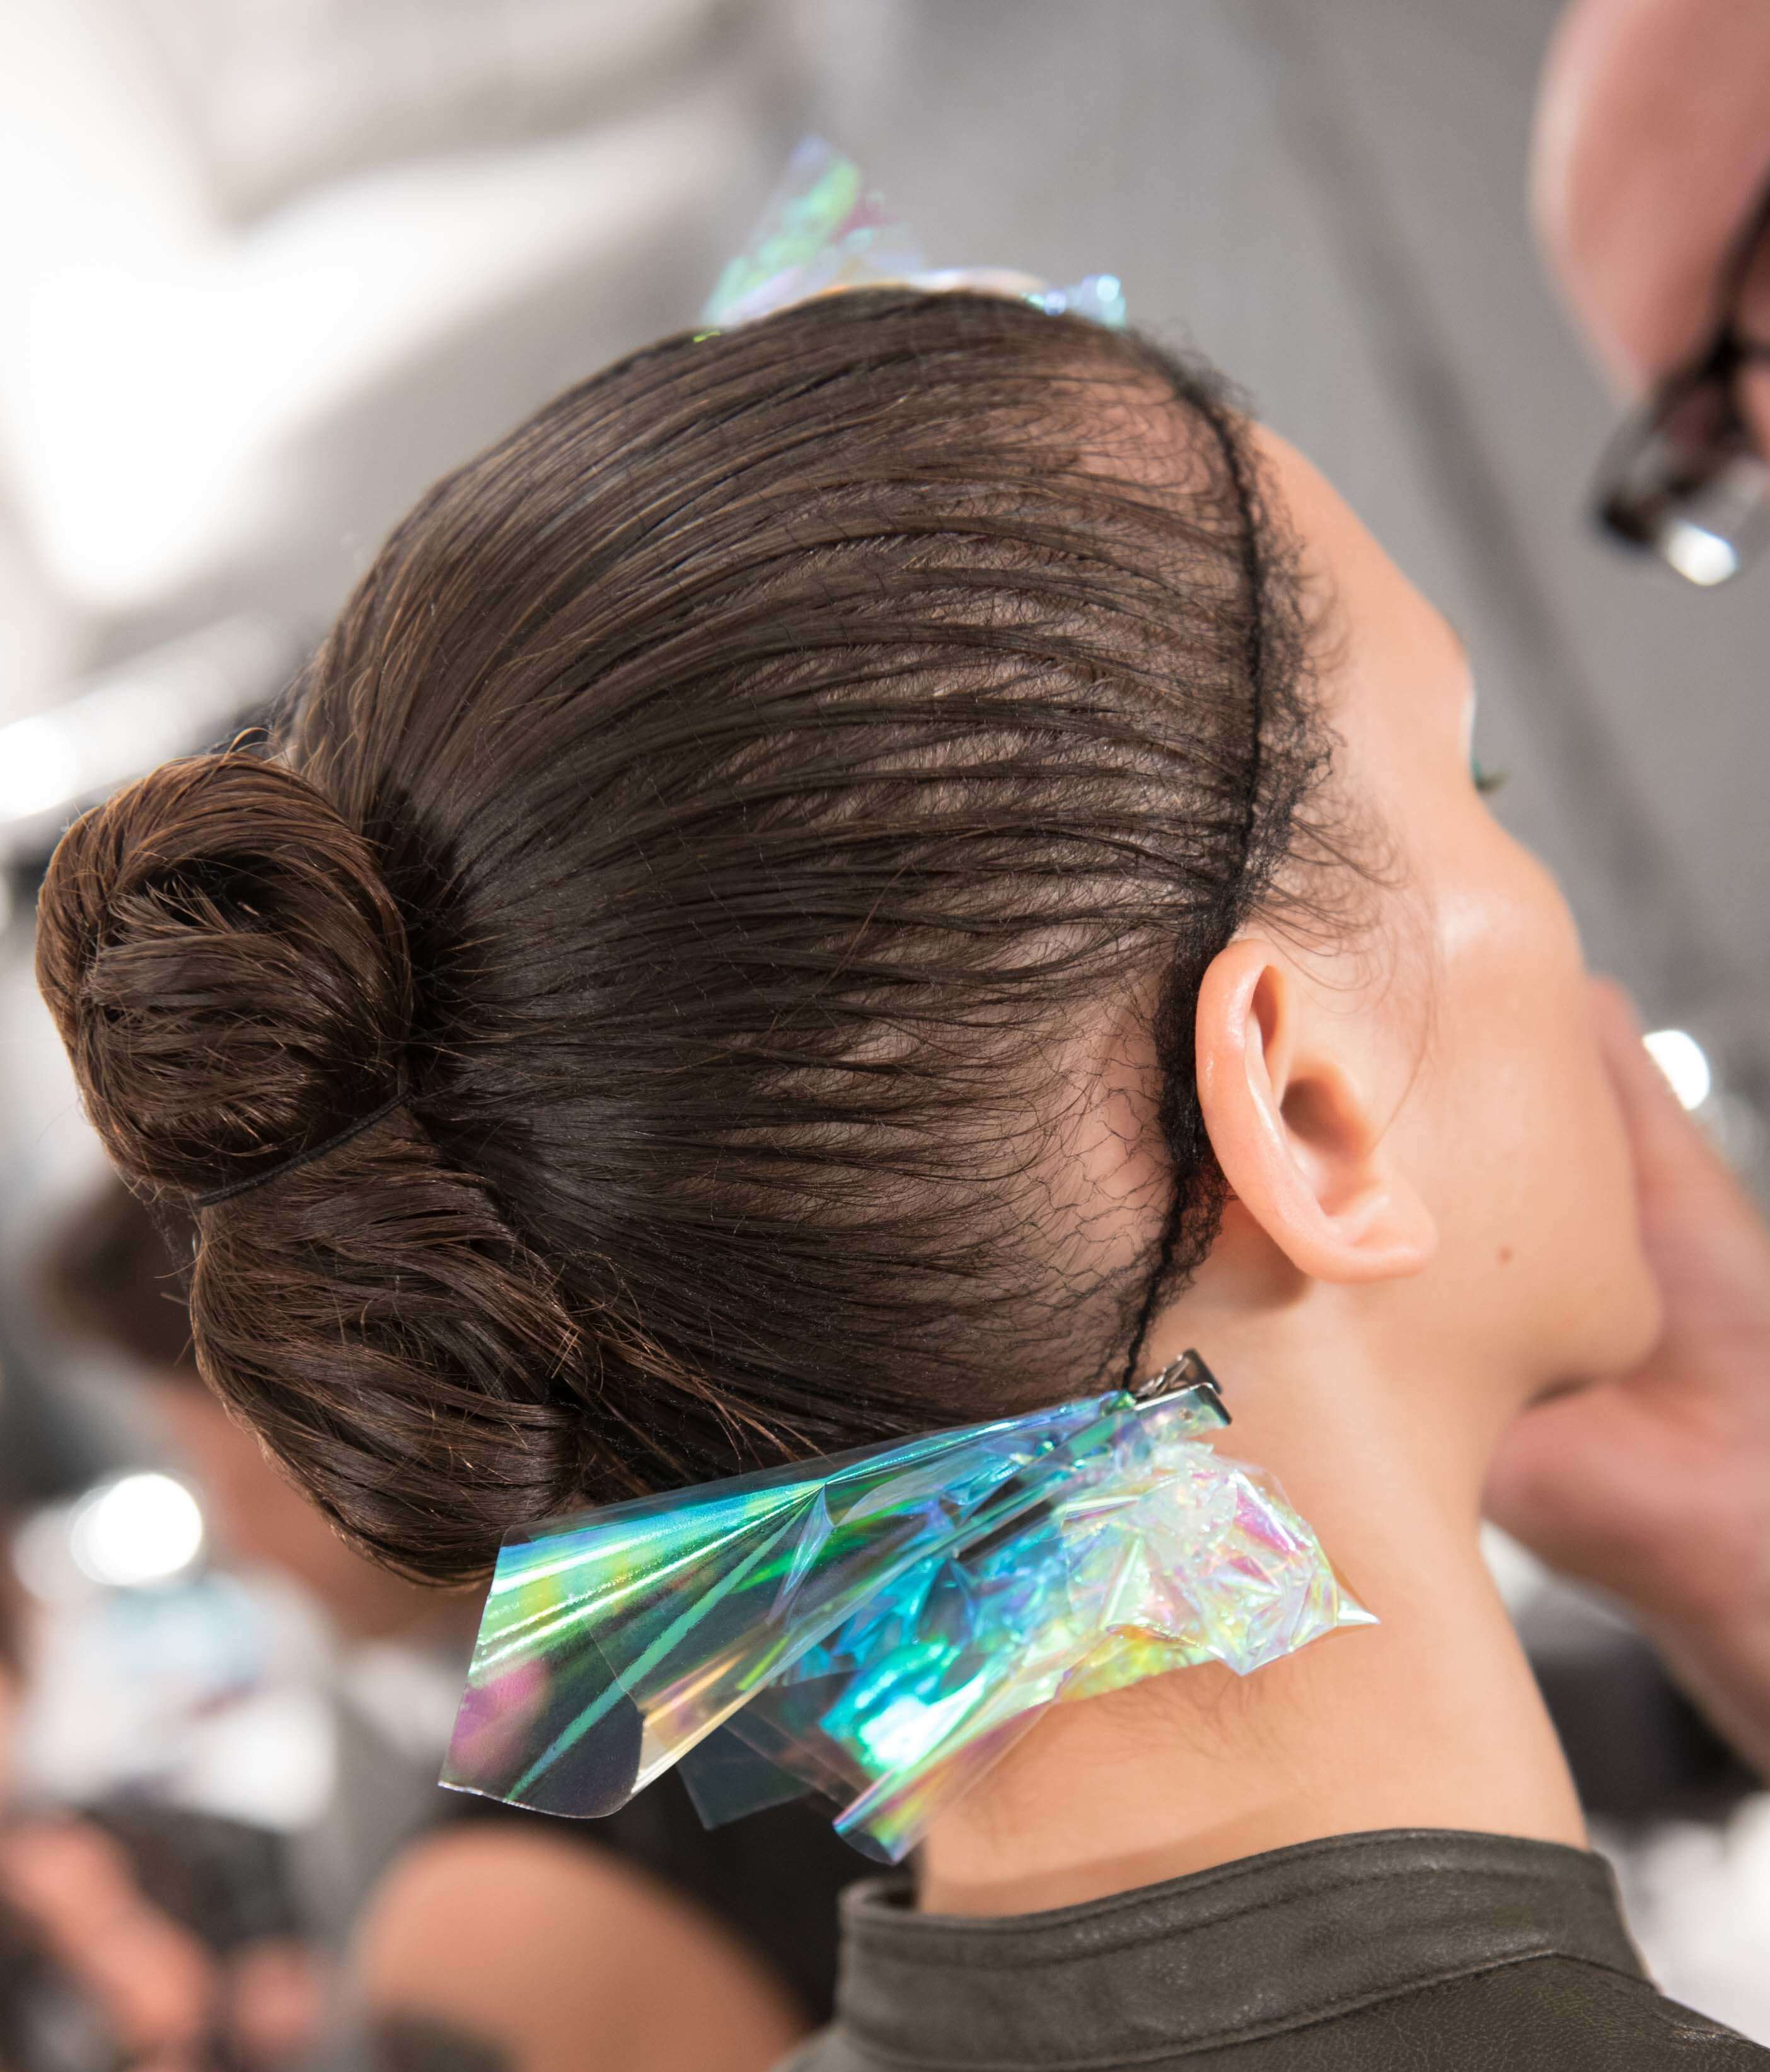 hairstyles for mid length hair: All Things Hair - IMAGE - double knot